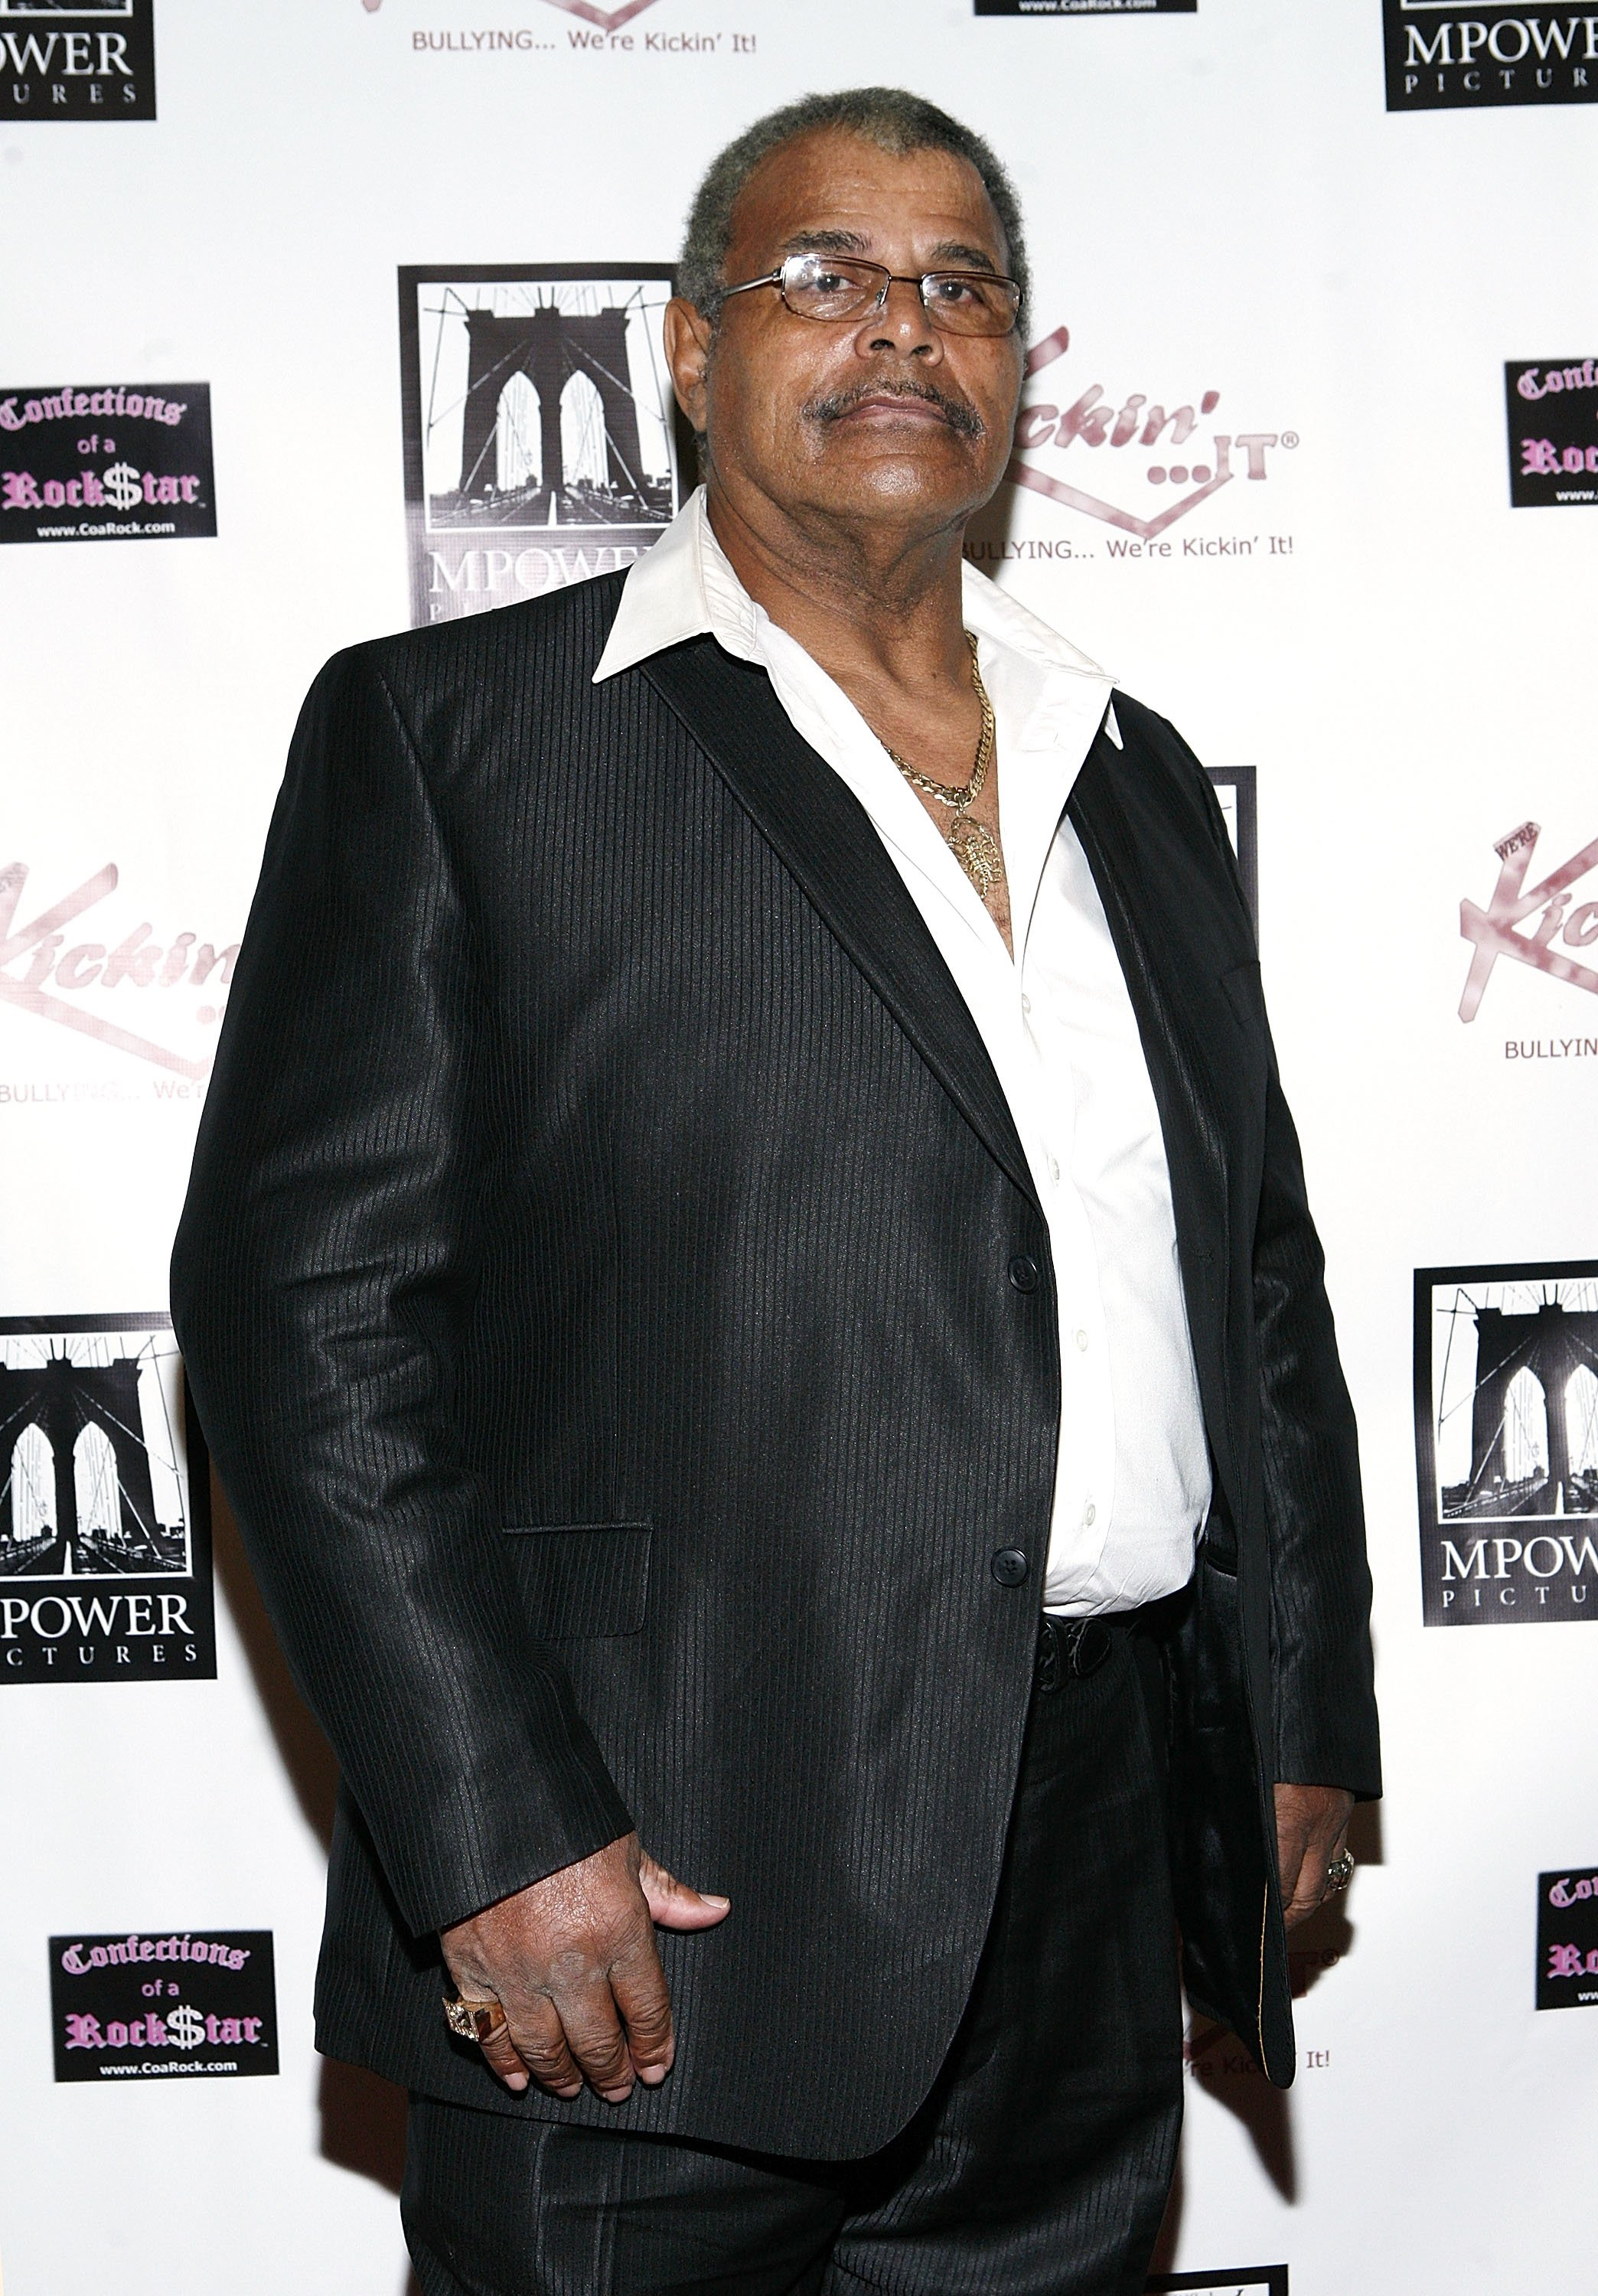 Rocky Johnson attends Unite in the Fight... to Knockout Bullying at the Hard Rock Cafe New York on October 20, 2011 | Photo: Getty Images